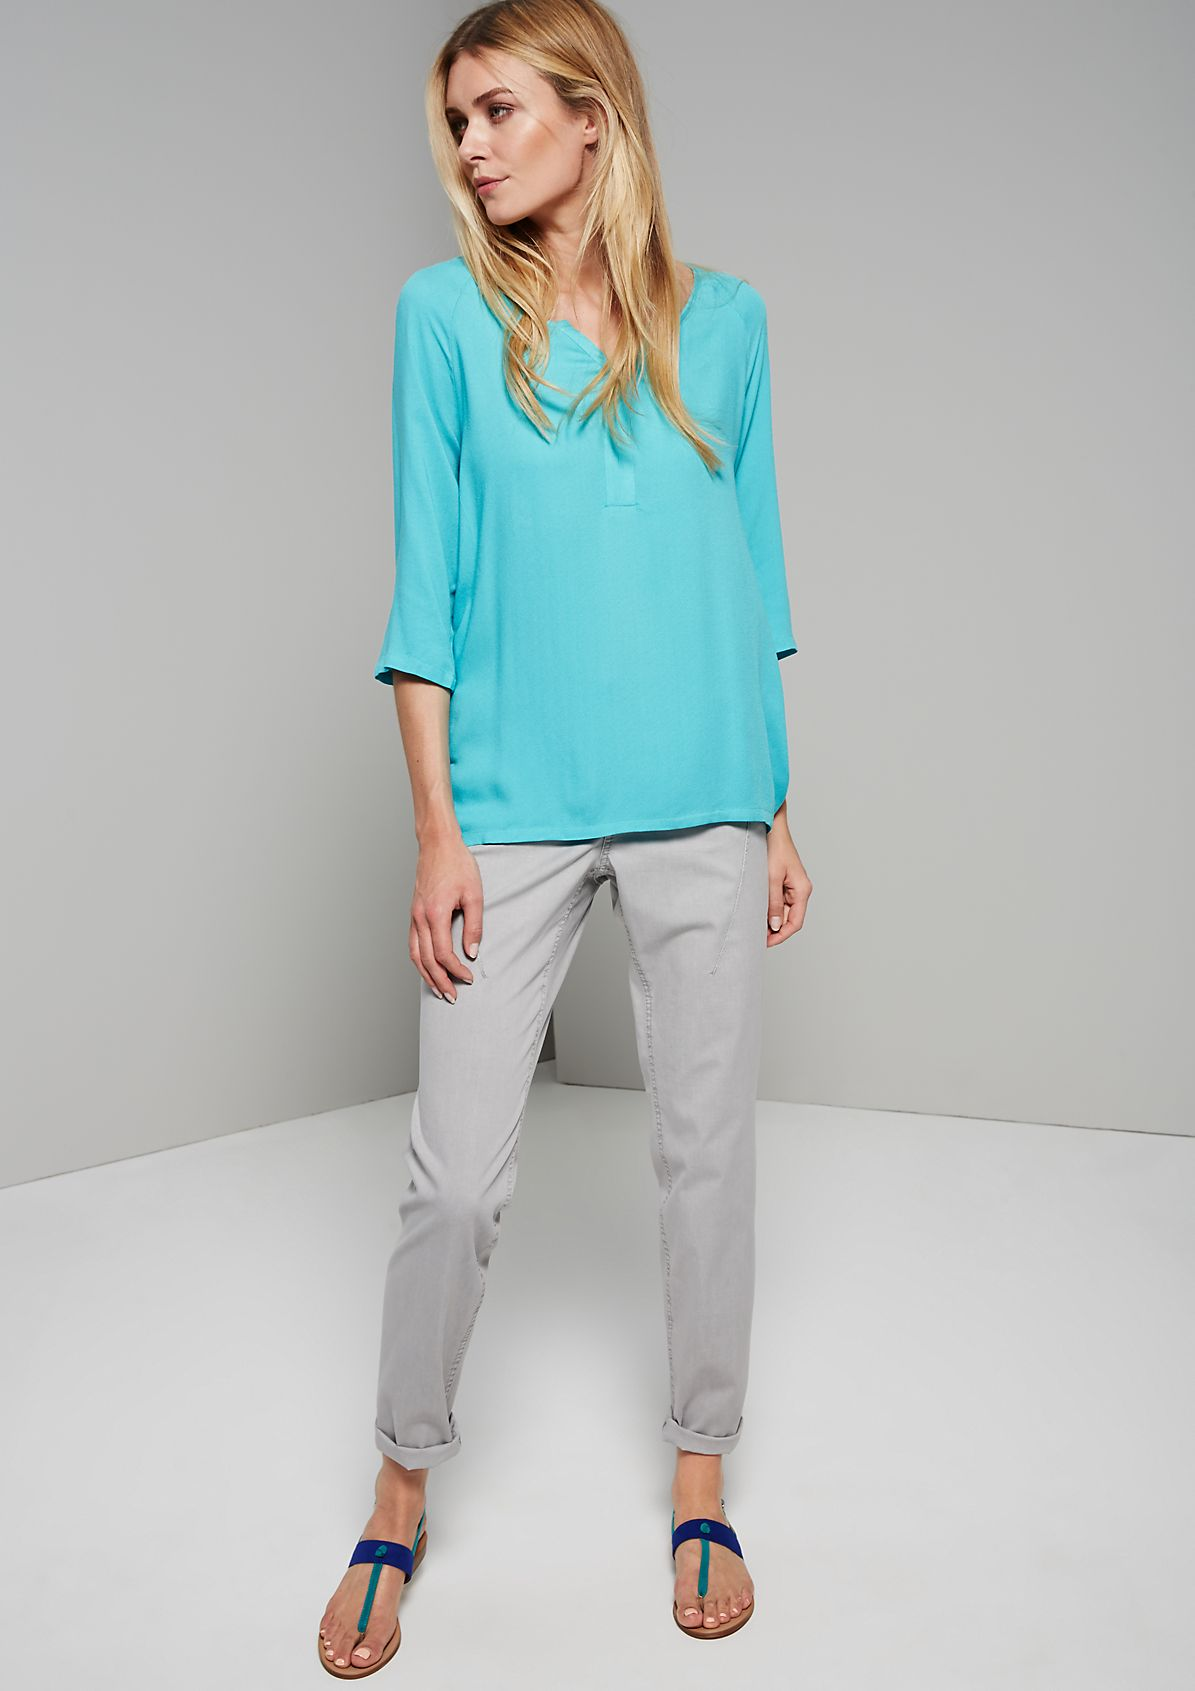 Feminine blouse with gorgeous design features from s.Oliver